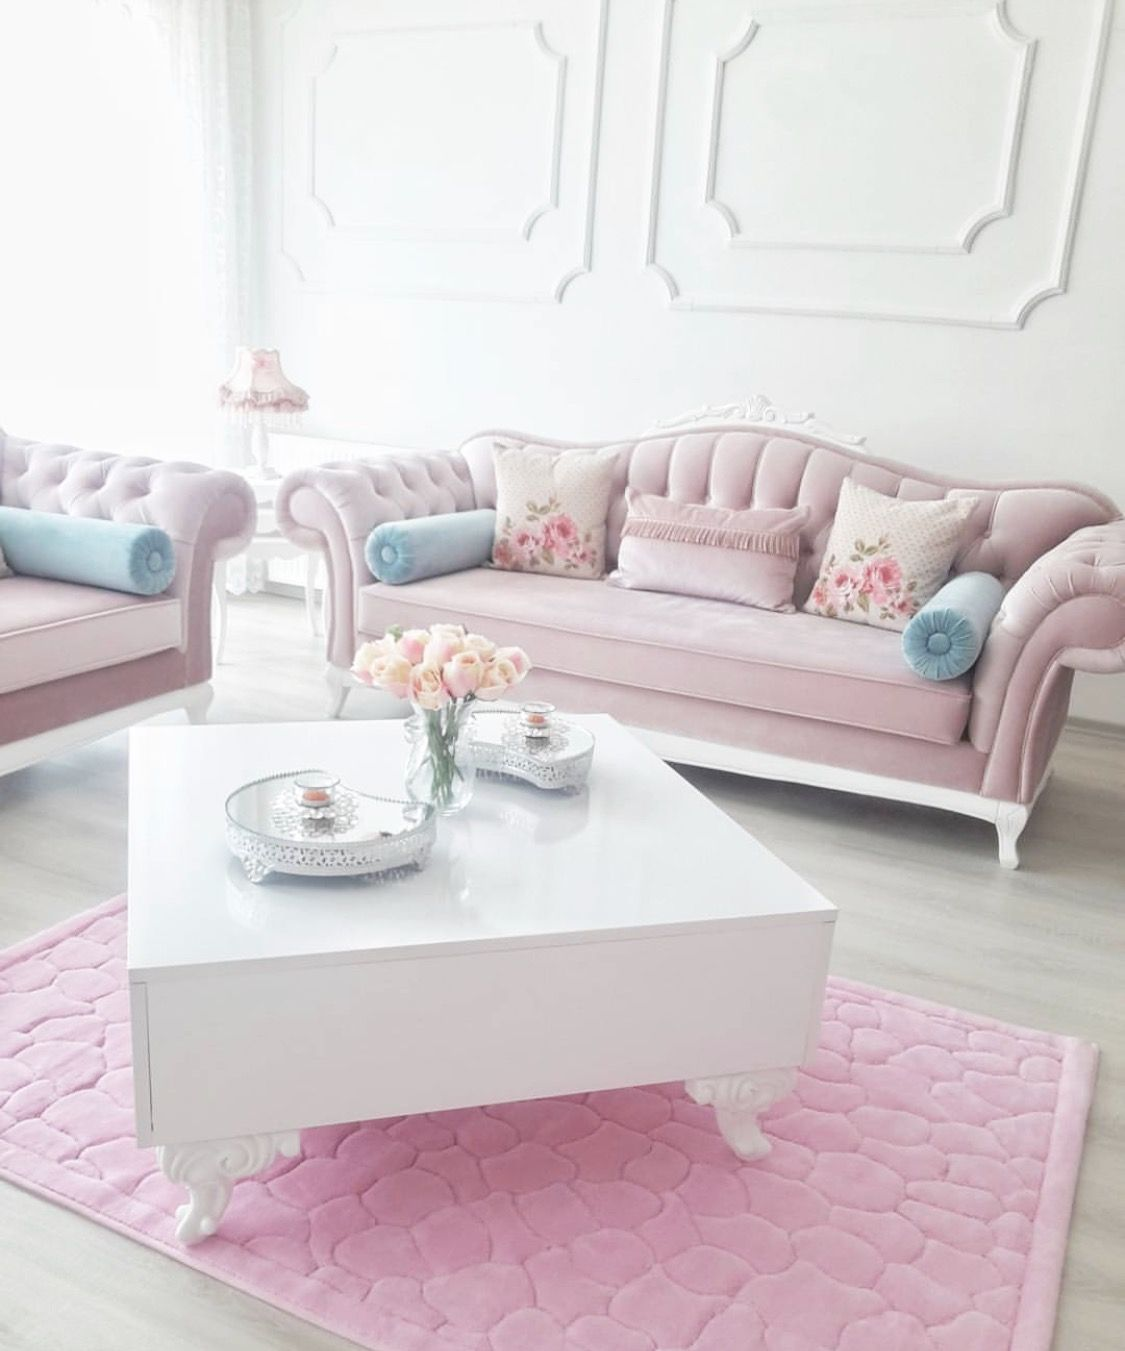 15 beautiful homes that are sure to make your heart skip a beat romantic living room feminine living room luxury living room